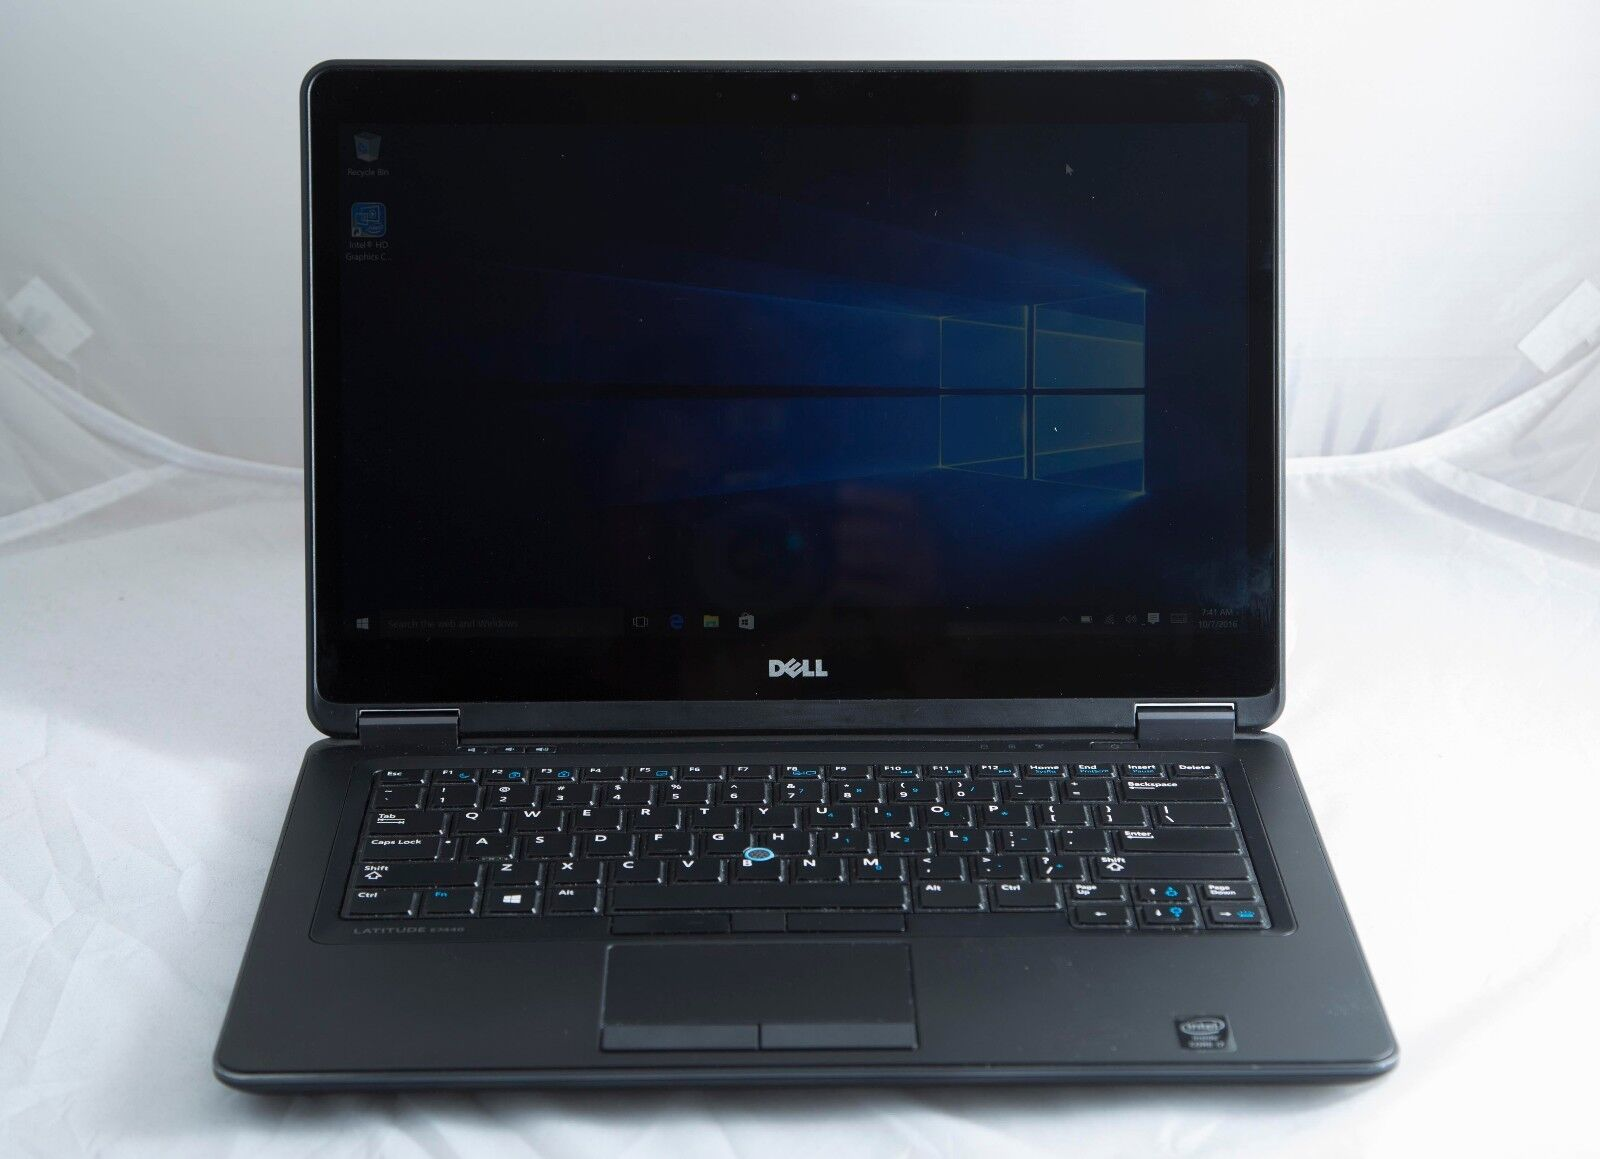 "Dell Ultrabook E7440 14"" Core i7-4600u 2.1GHZ 16GB 256GB SSD 1080p Win 7 Laptop"